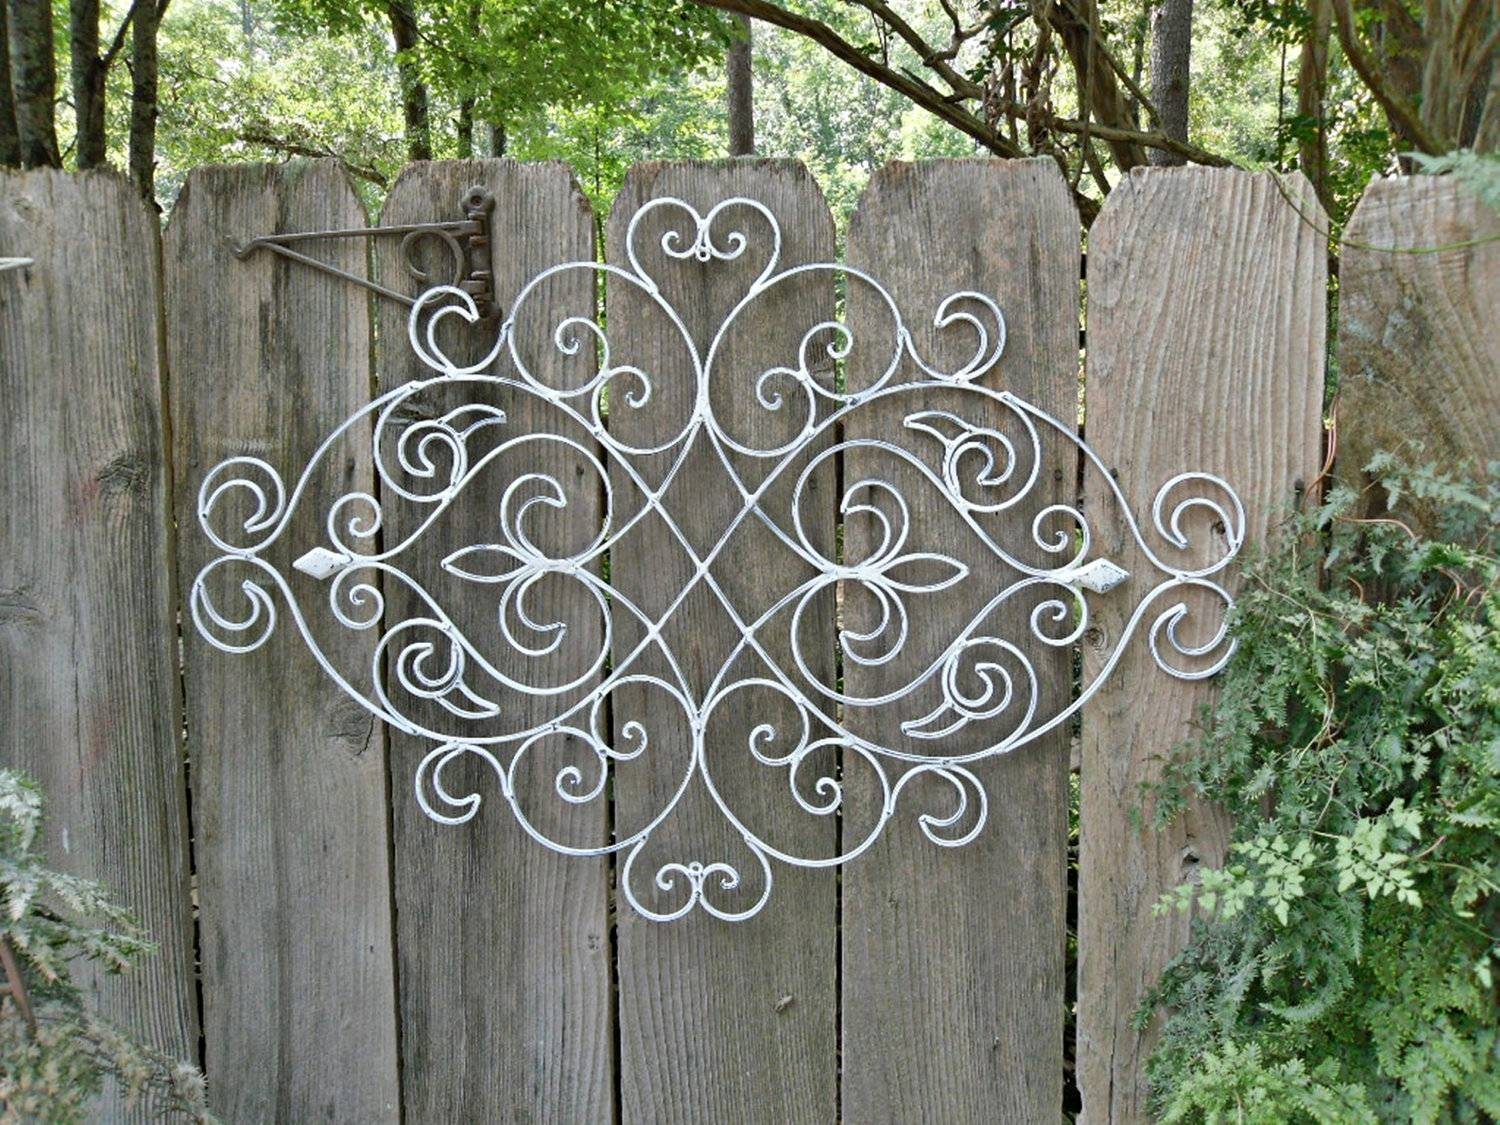 Outdoor Metal Wall Art Design Ideas | Indoor & Outdoor Decor Inside Best And Newest Exterior Metal Wall Art (View 11 of 20)